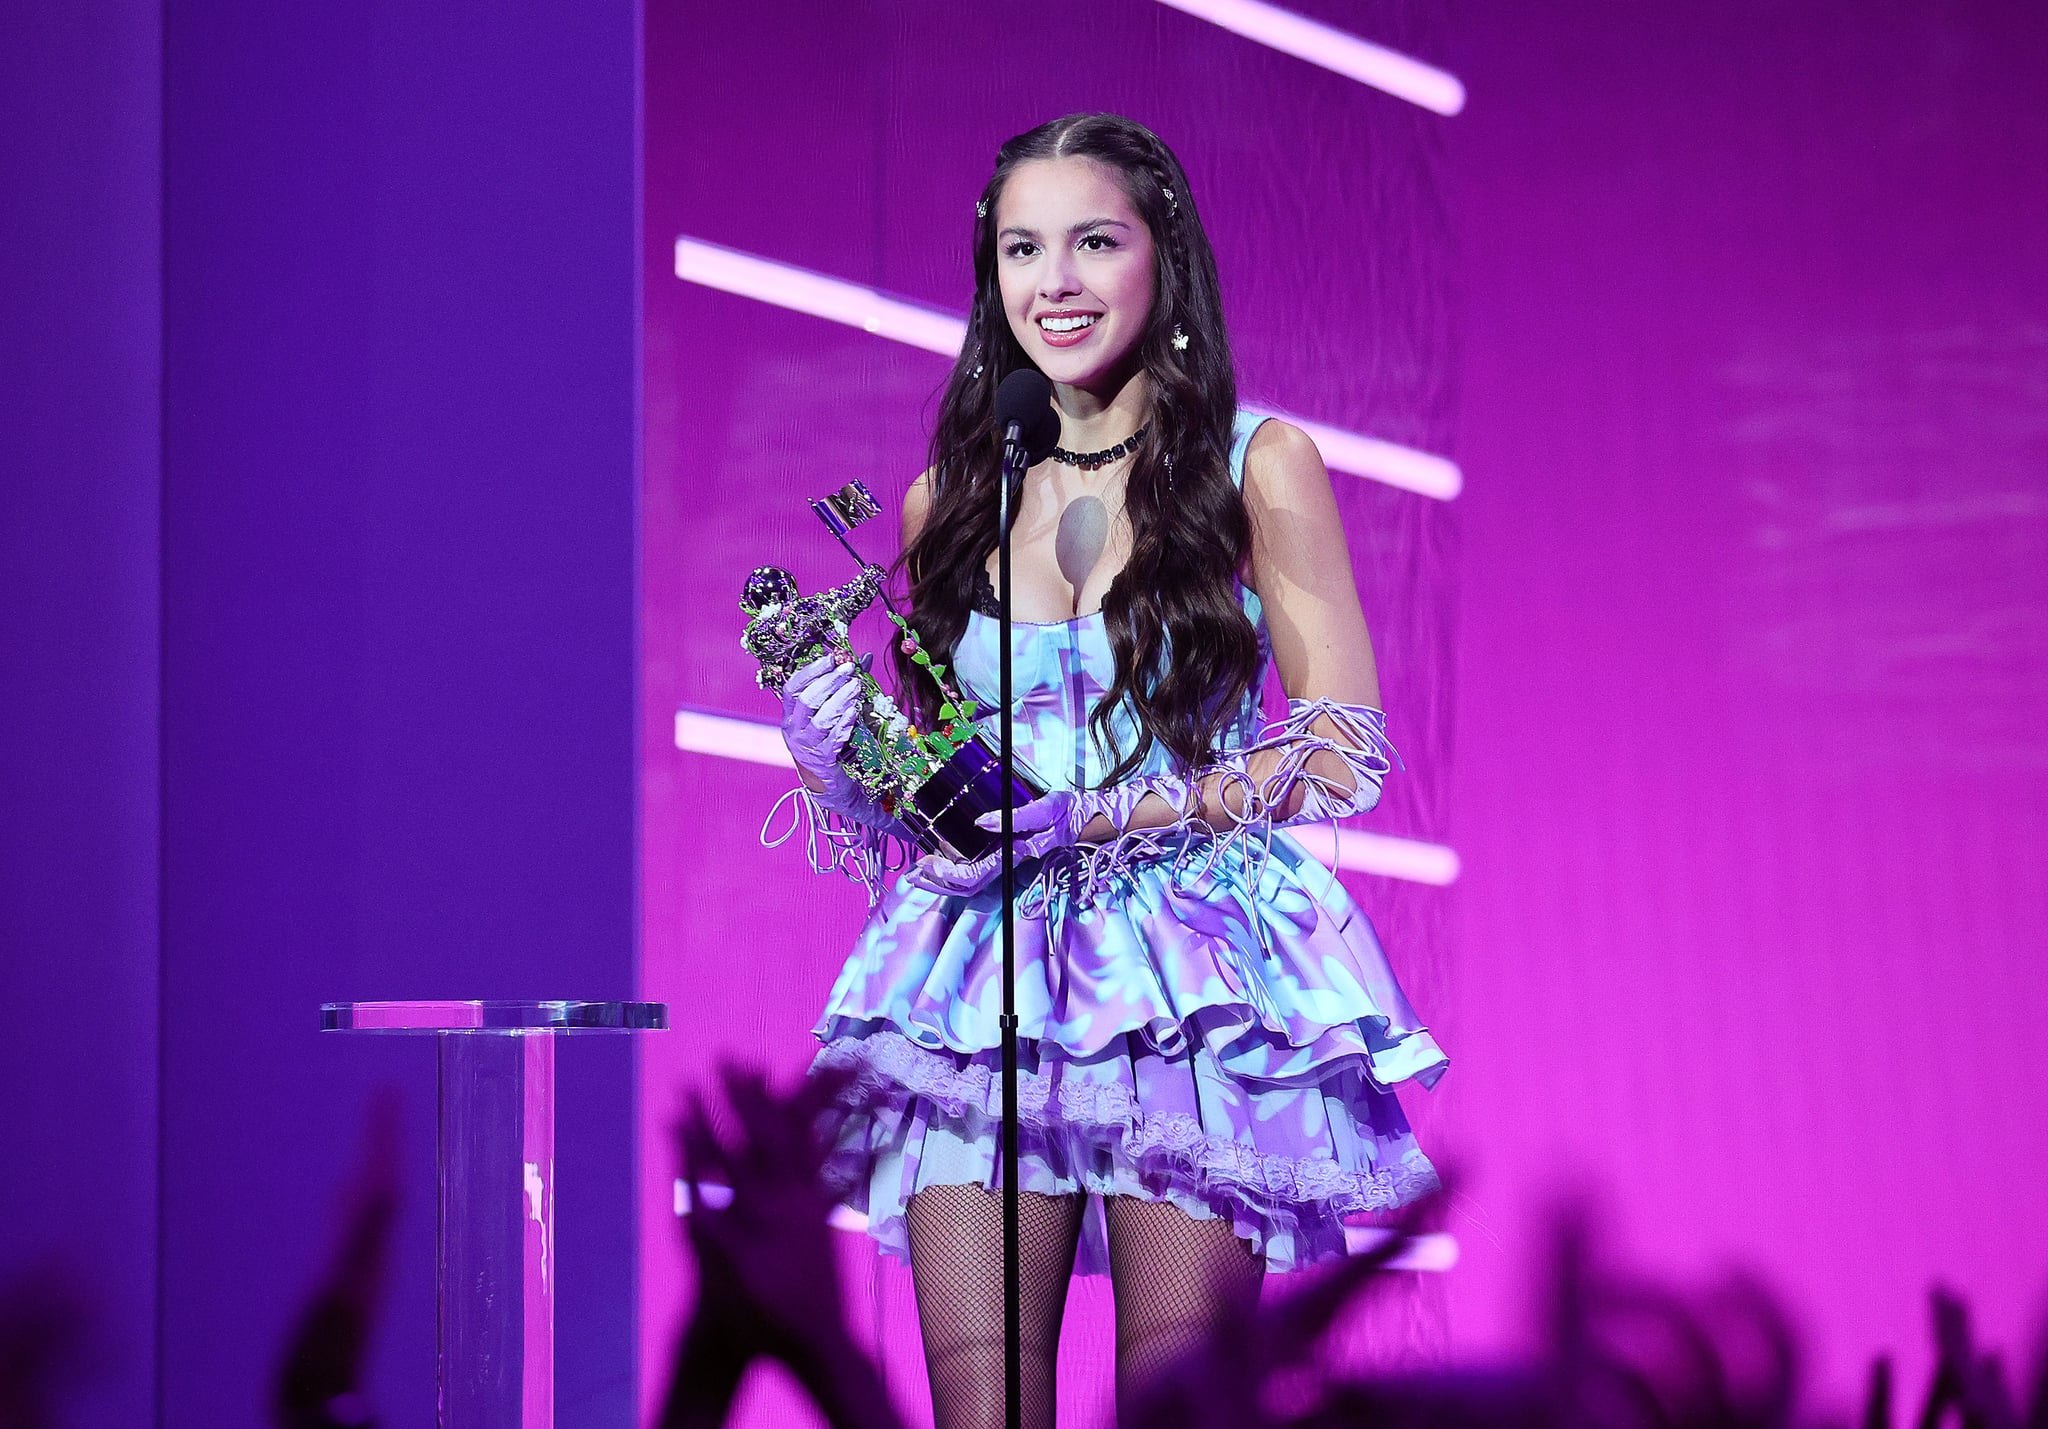 NEW YORK, NEW YORK - SEPTEMBER 12: Olivia Rodrigo accepts award for Song Of The Year onstage during the 2021 MTV Video Music Awards at Barclays Center on September 12, 2021 in the Brooklyn borough of New York City. (Photo by Theo Wargo/Getty Images for MTV/ViacomCBS)